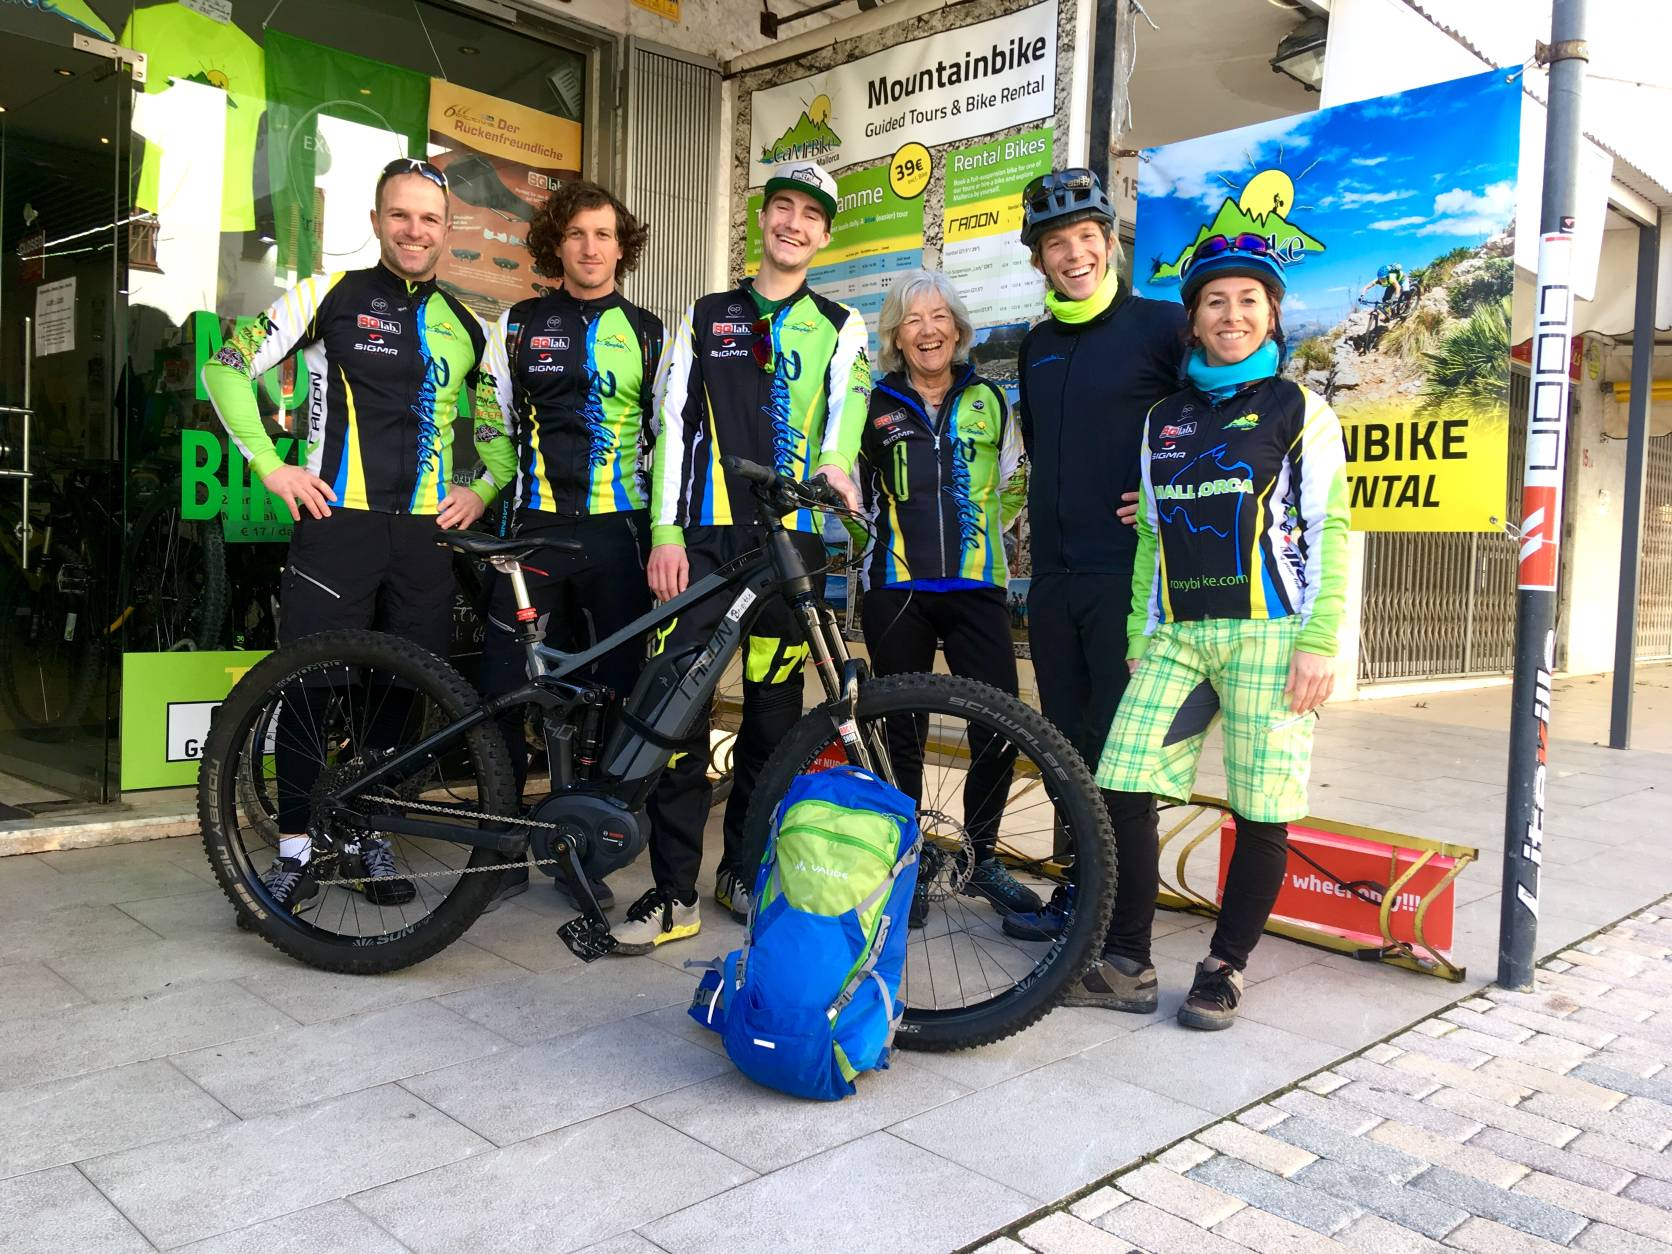 Dein MTB-Bike Team bei CaMi-Bike in Cala Millor